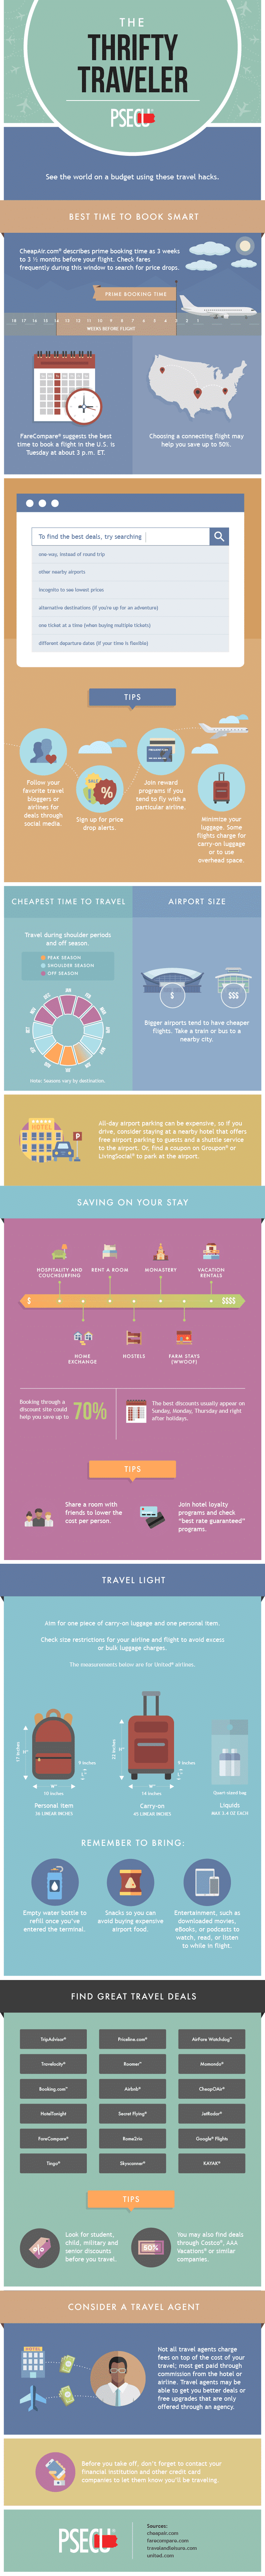 ways to find cheap flights infographic